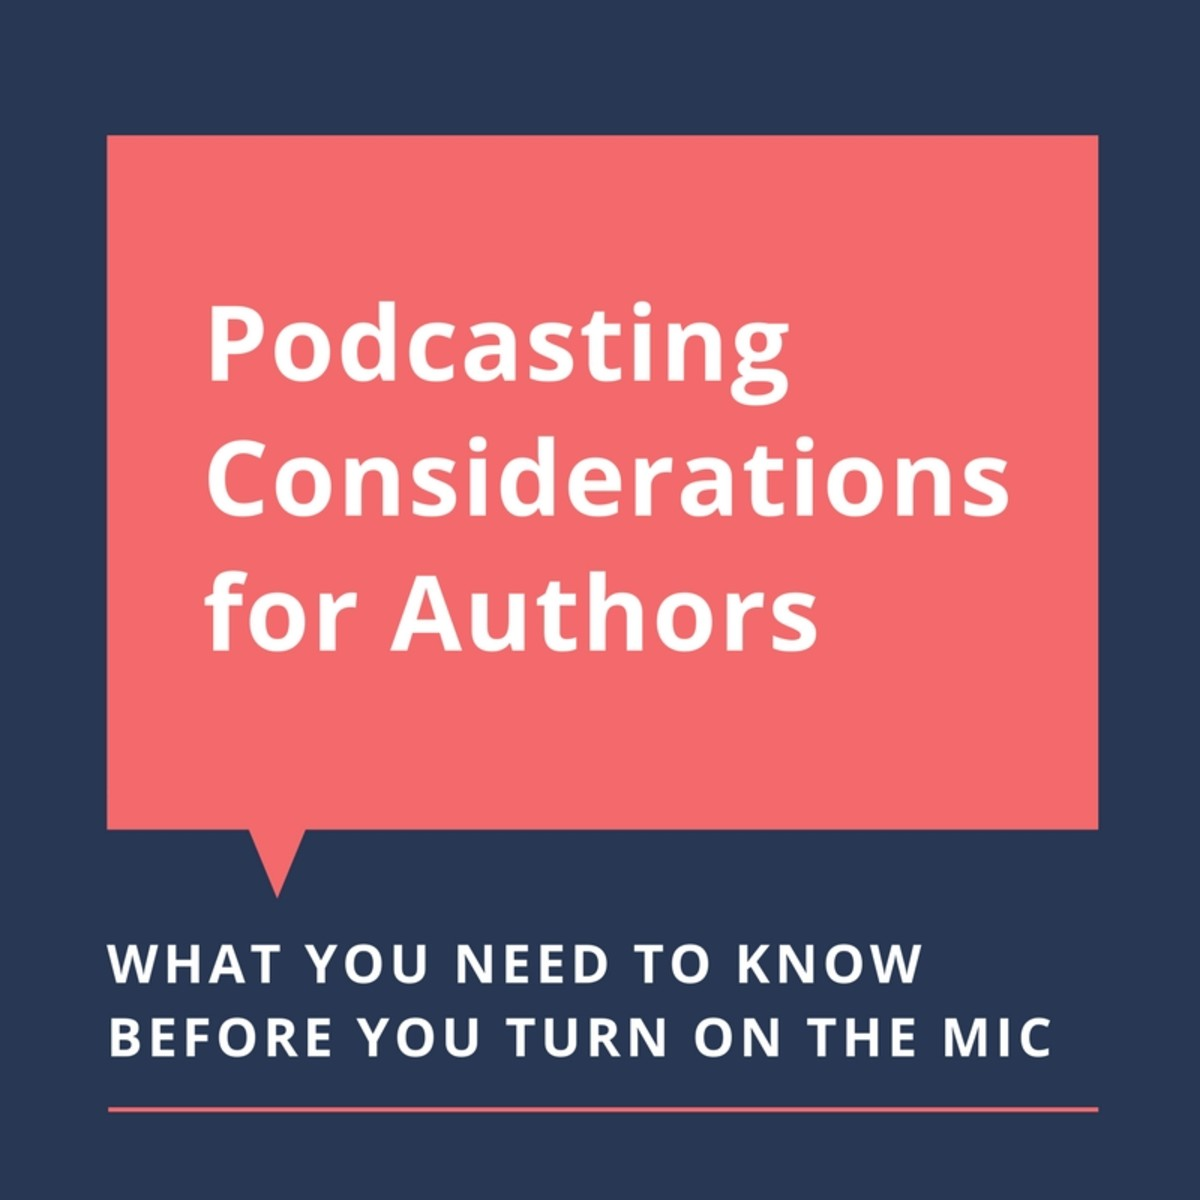 Podcasting Considerations for Authors